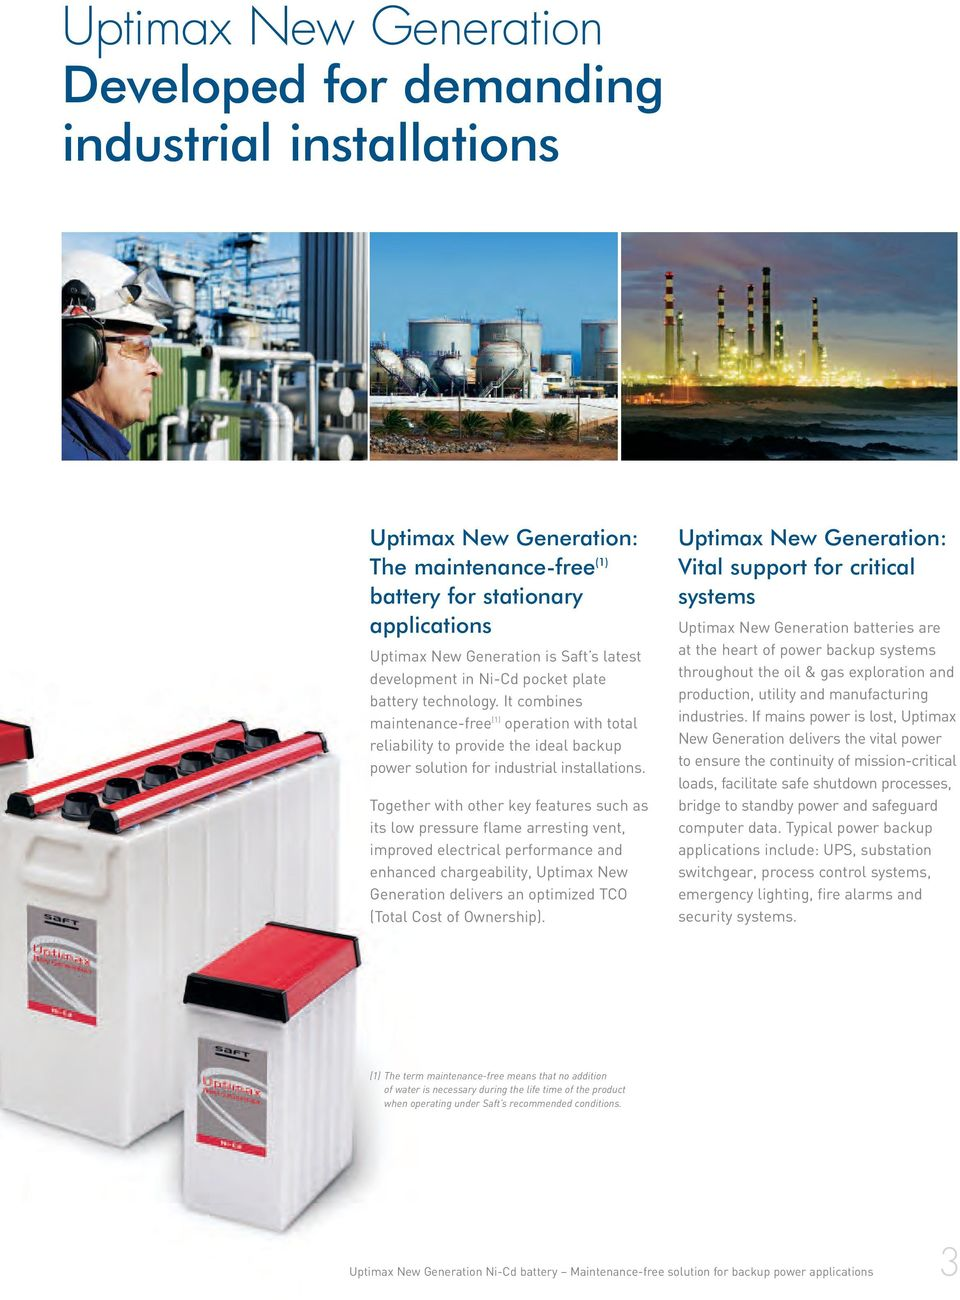 Together with other key features such as its low pressure flame arresting vent, improved electrical performance and enhanced chargeability, Uptimax New Generation delivers an optimized TCO (Total